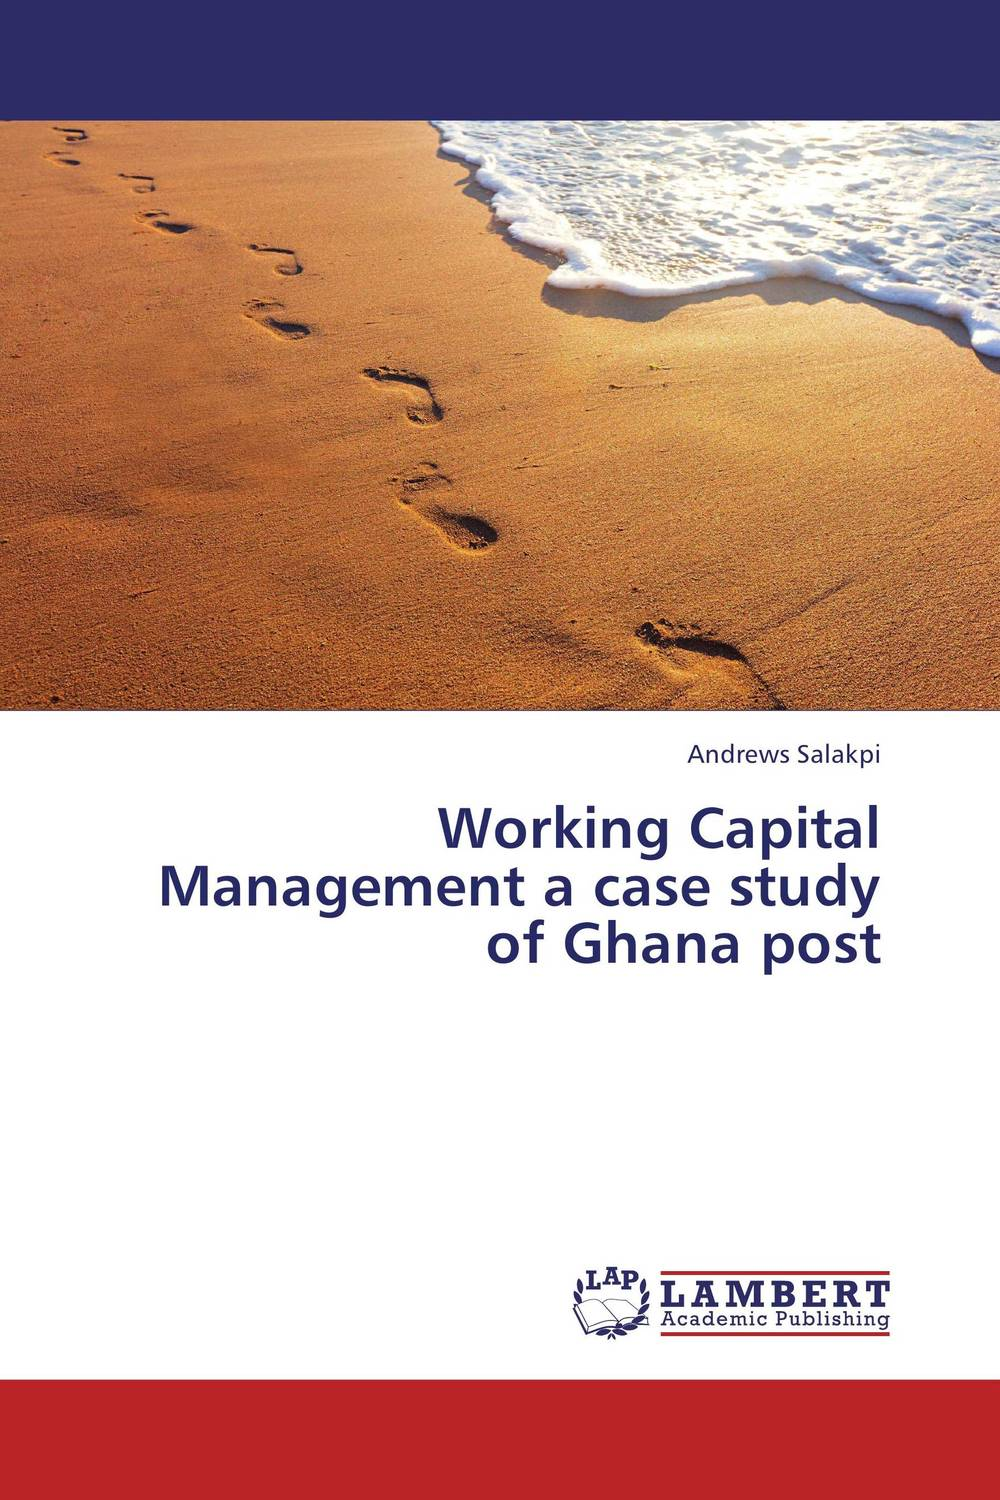 Working Capital Management  a case study of Ghana post alexander haislip essentials of venture capital